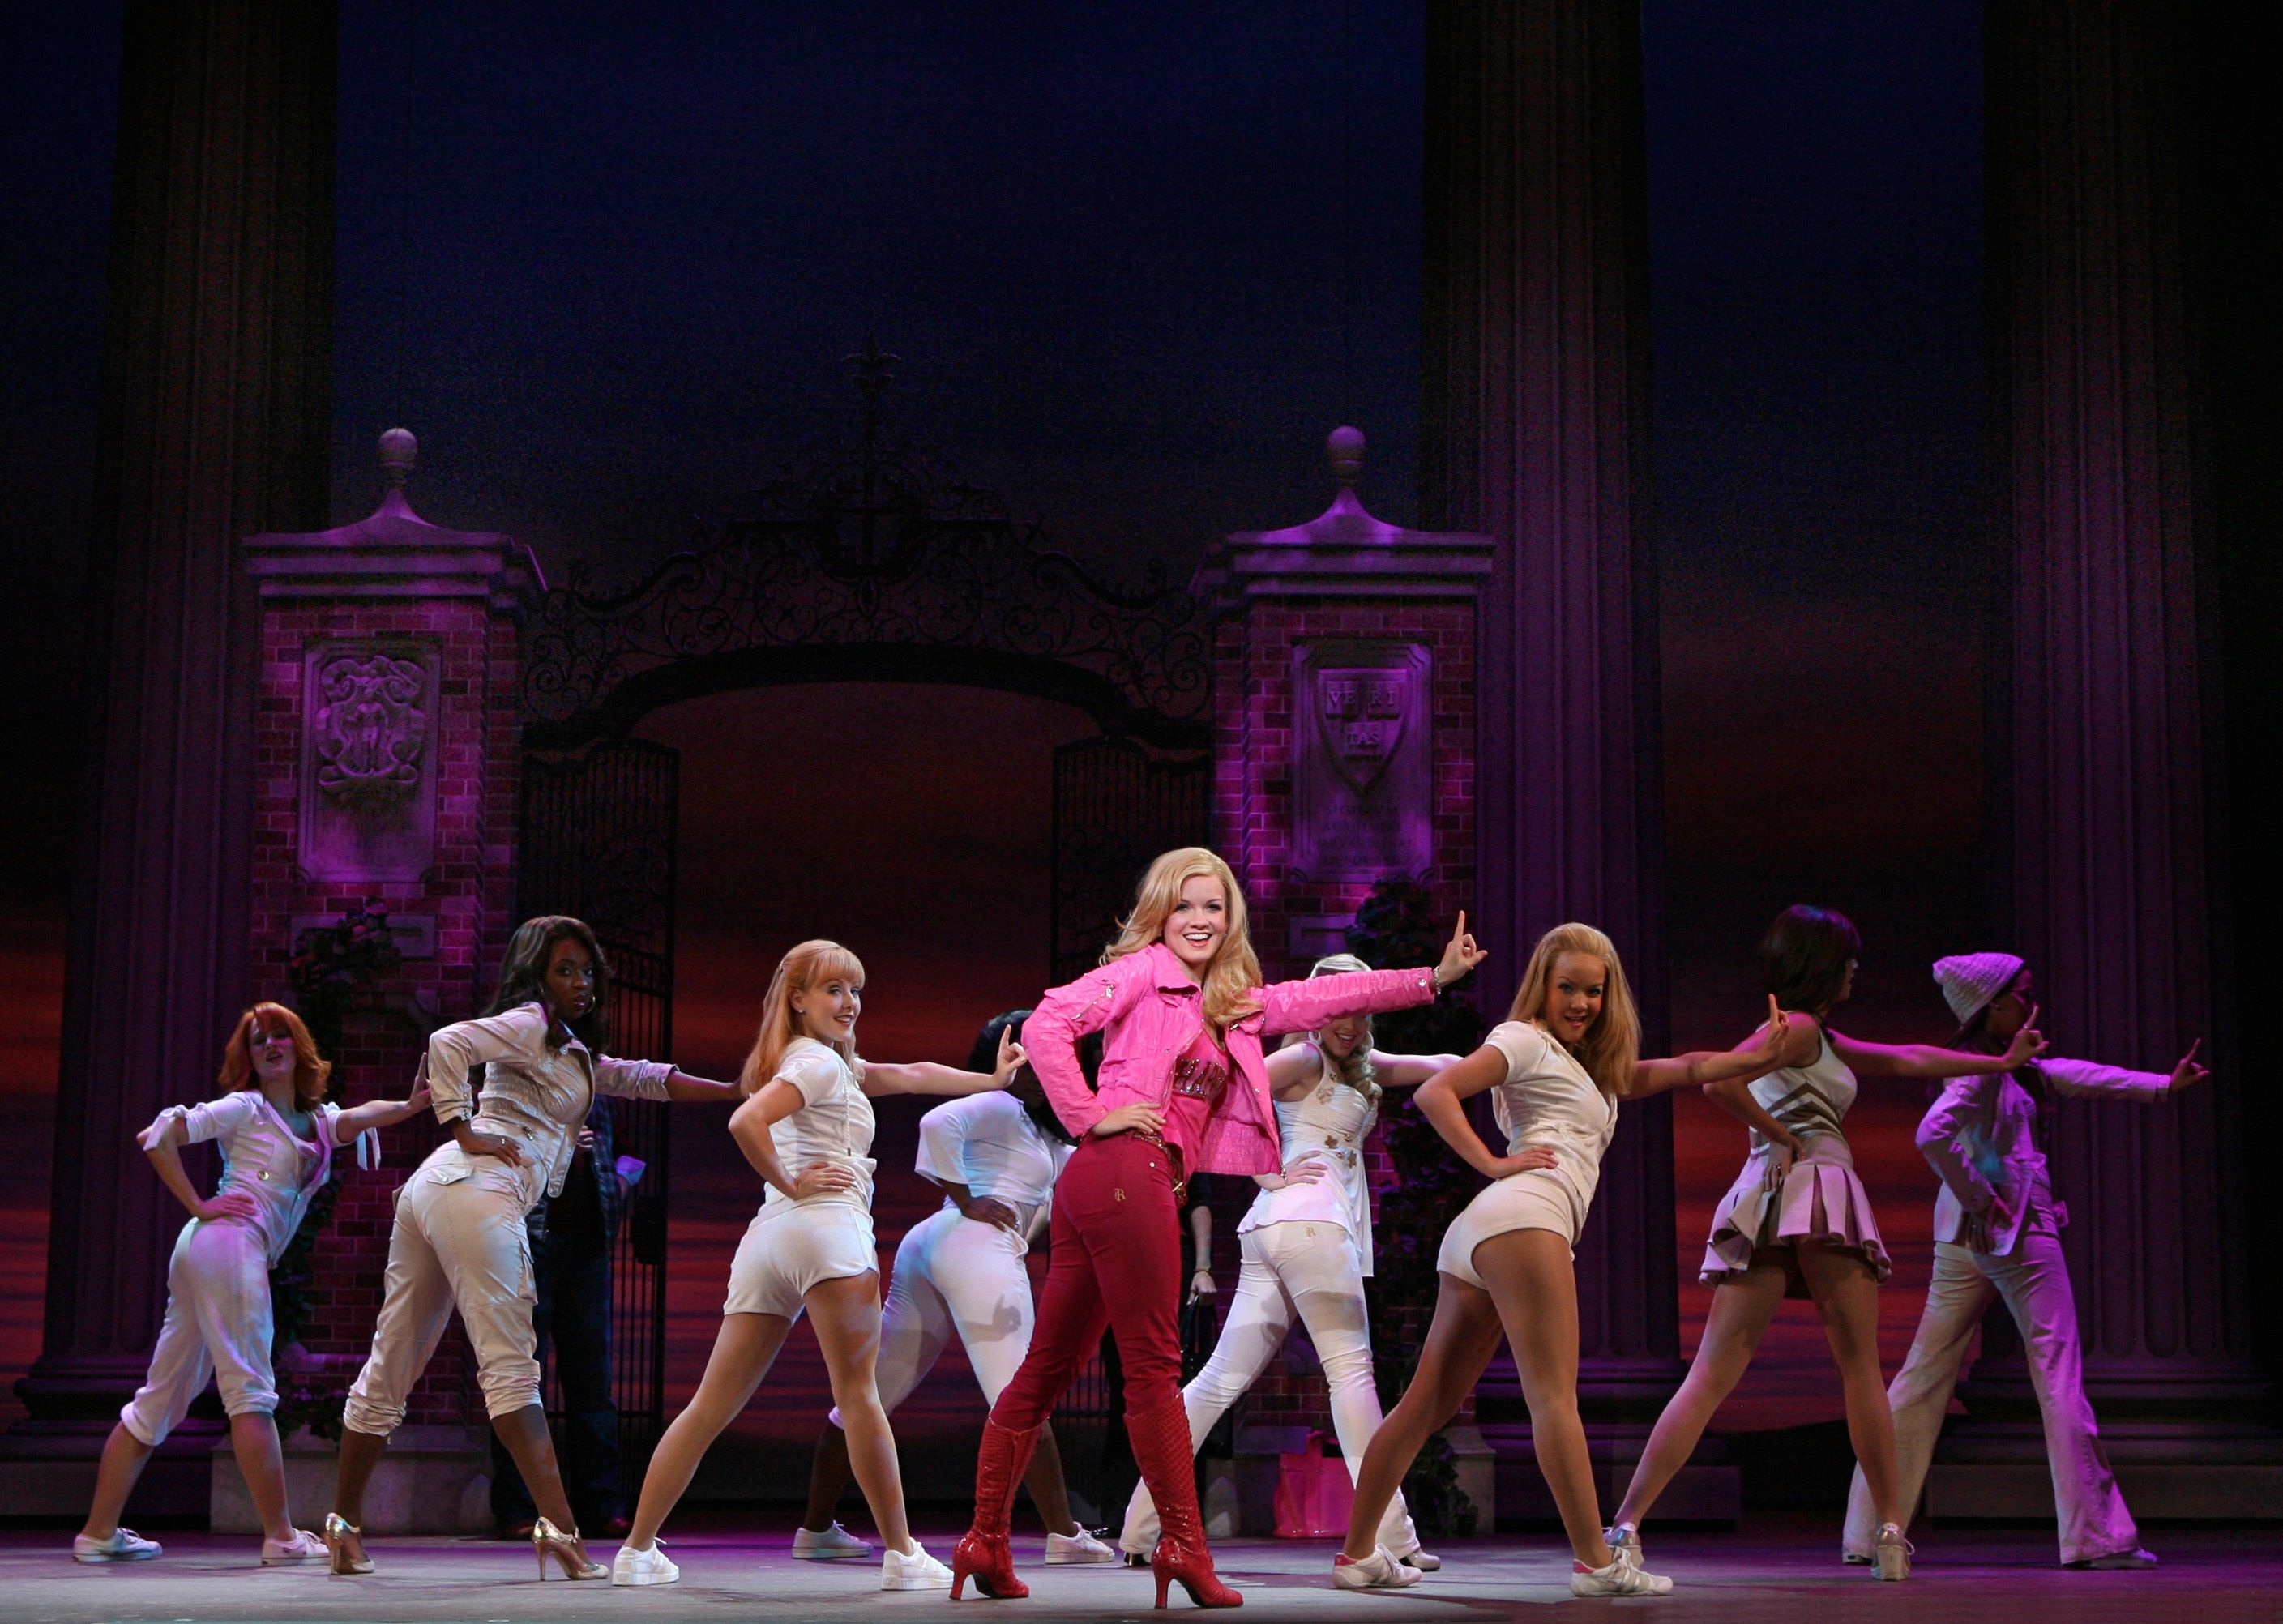 best images about legally blonde costumes irish 17 best images about legally blonde costumes irish dance musicals and harvard students